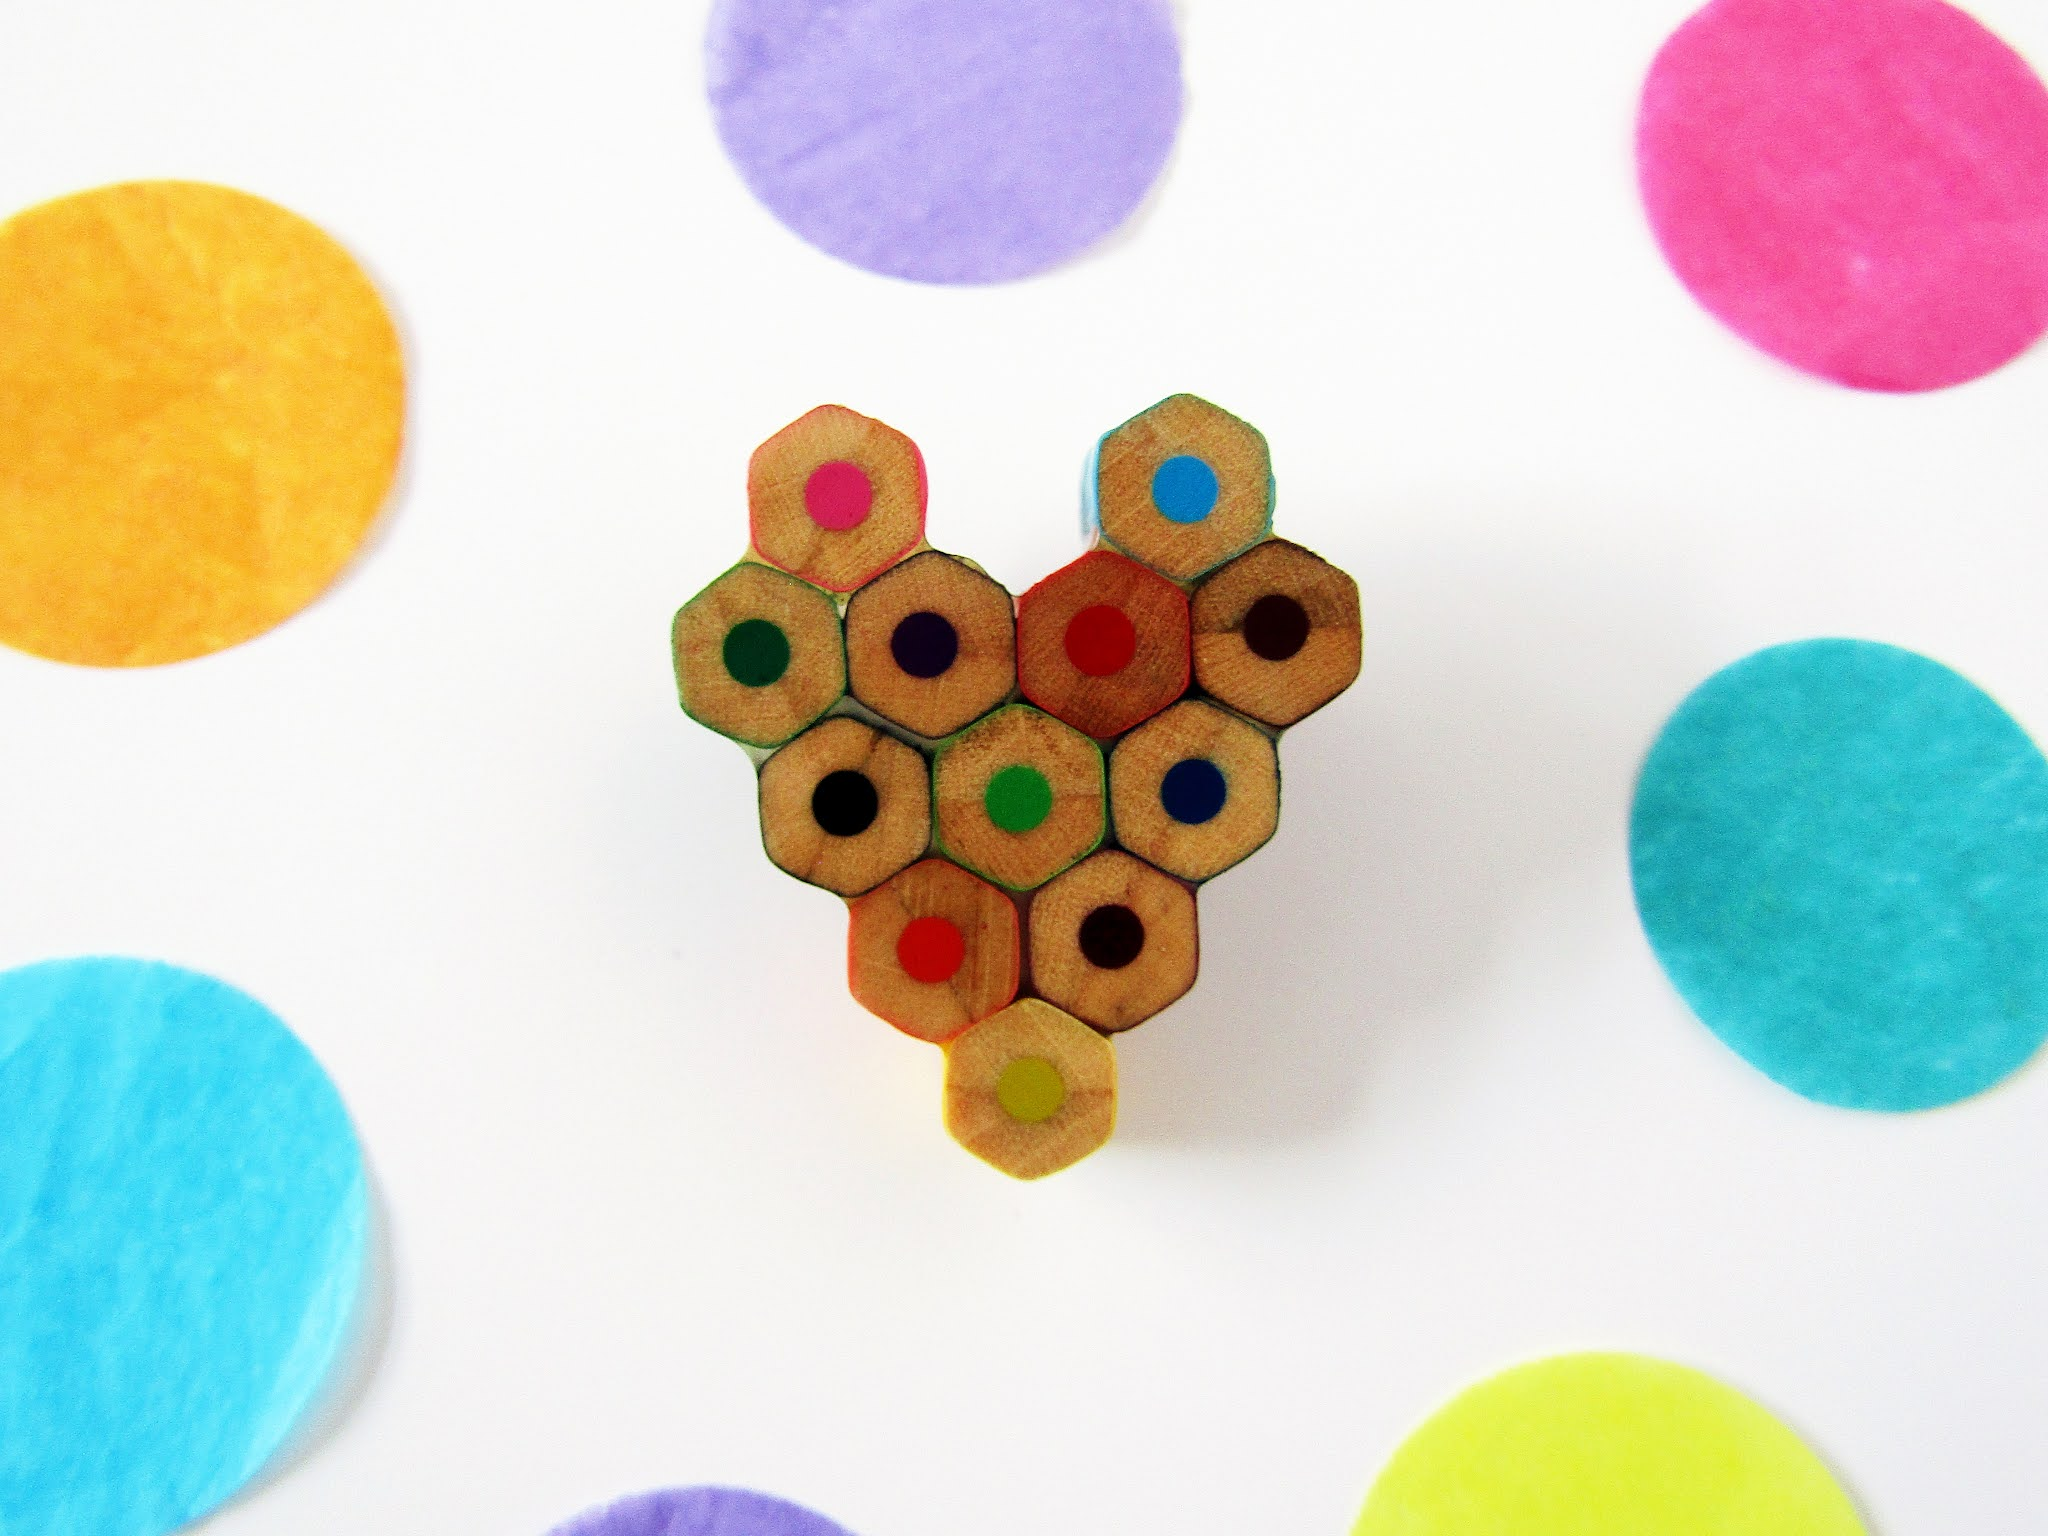 A photo of a wooden heart-shaped brooch made from the ends of colourful pencils.